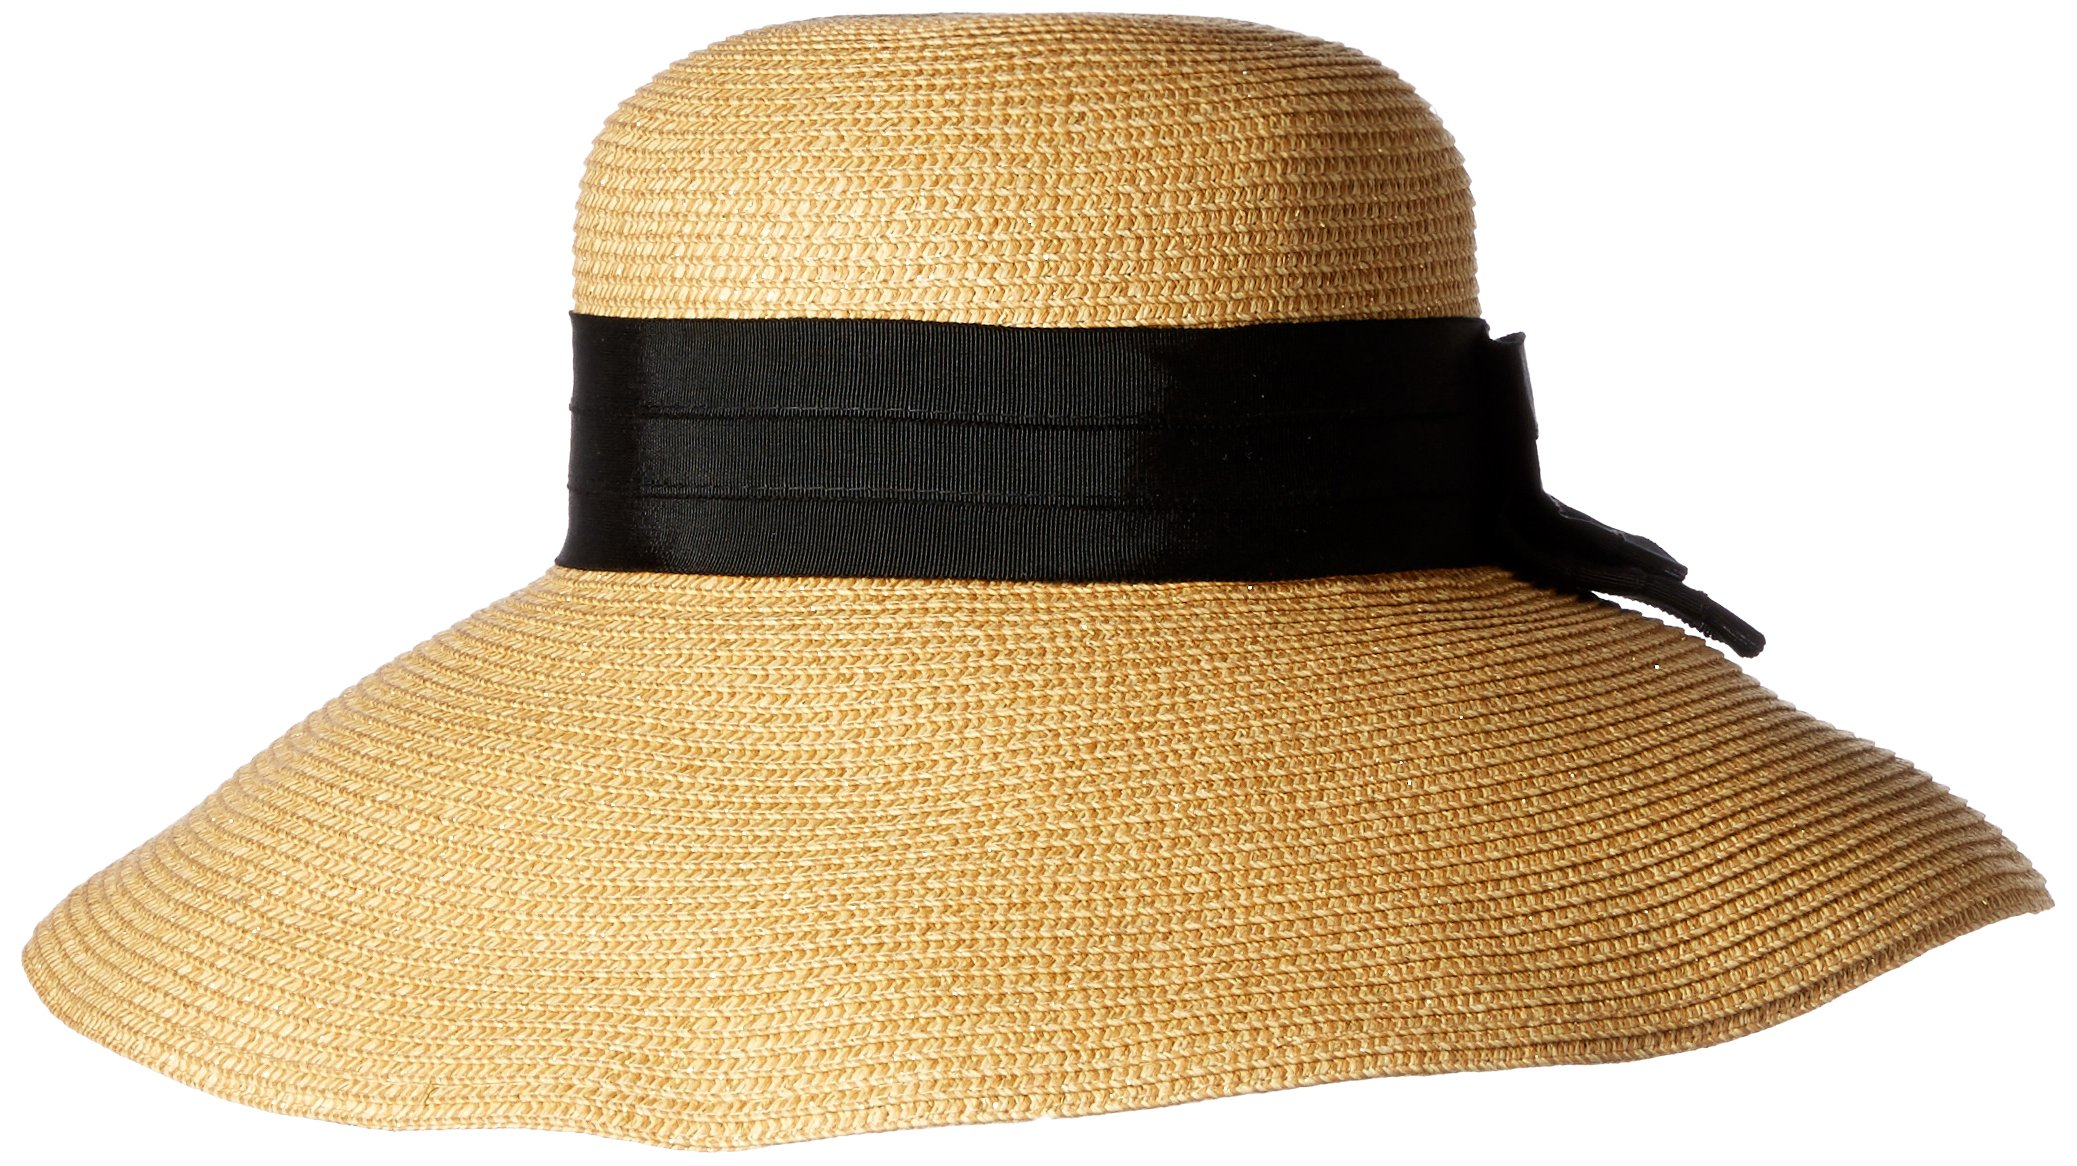 Gottex Women's Vesper Large Brim Sunhat Packable, Adjustable and Upf Rated, Gold, One Size